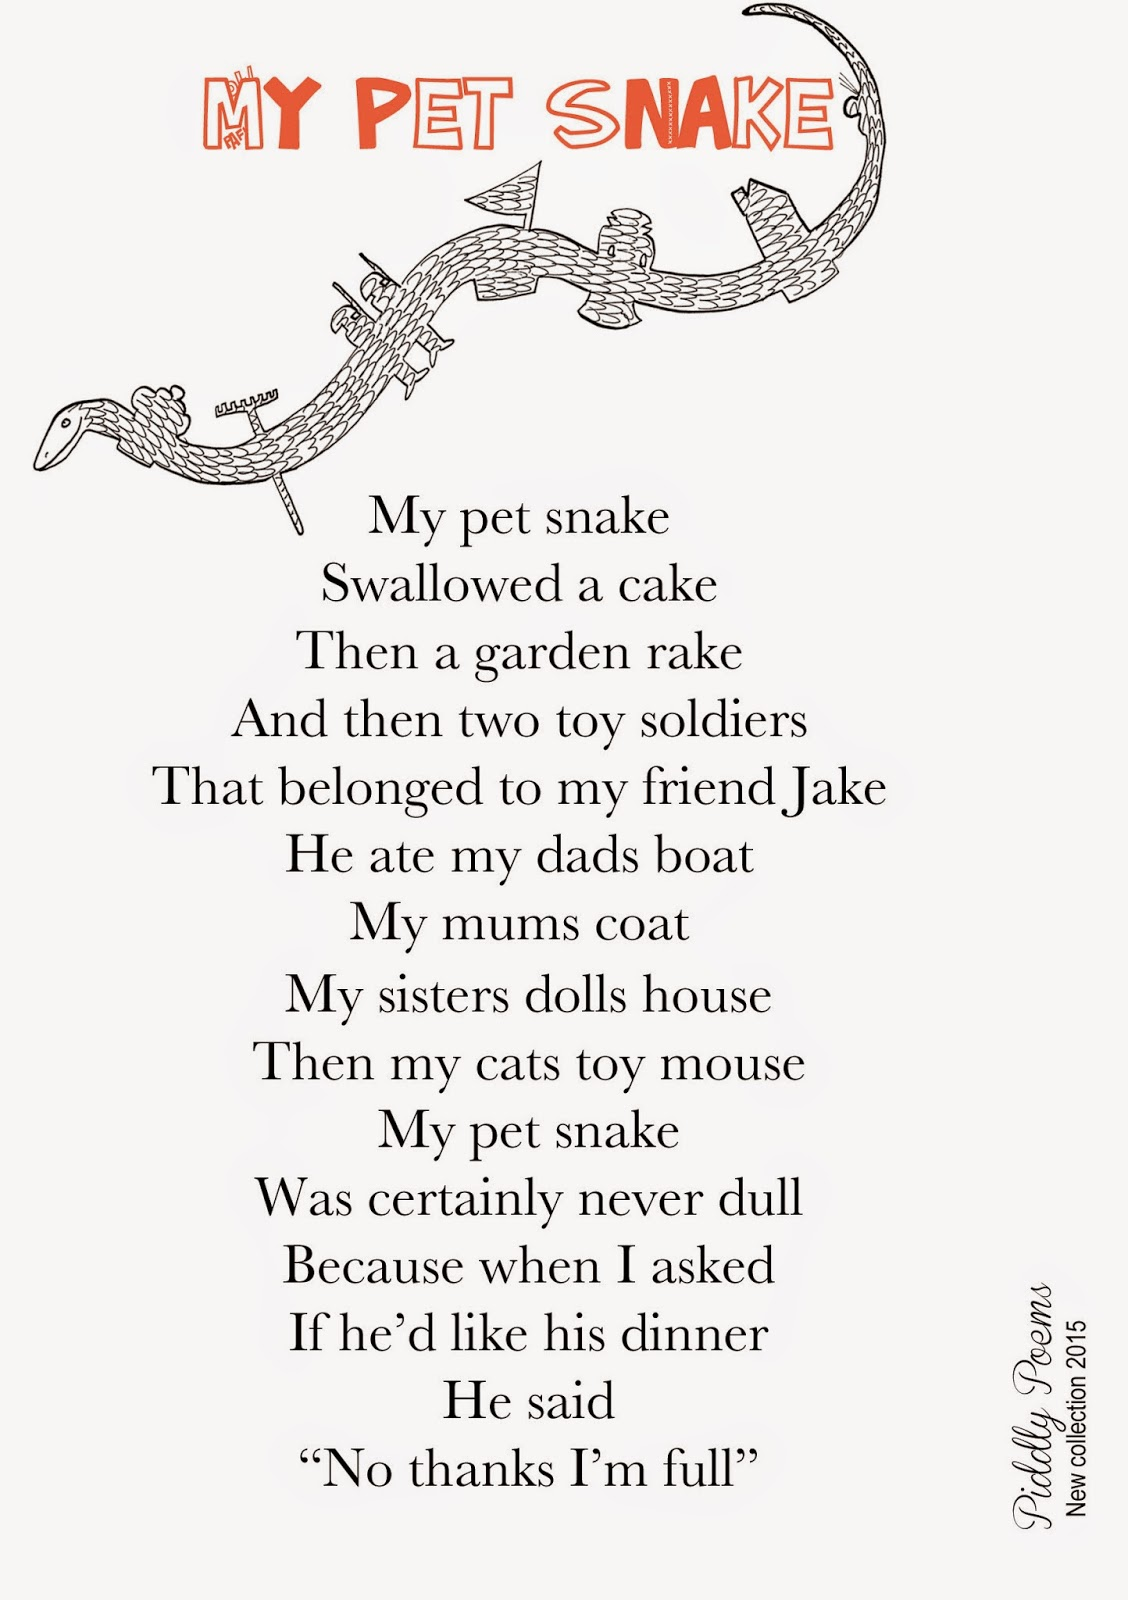 Piddly poems: My pet snake